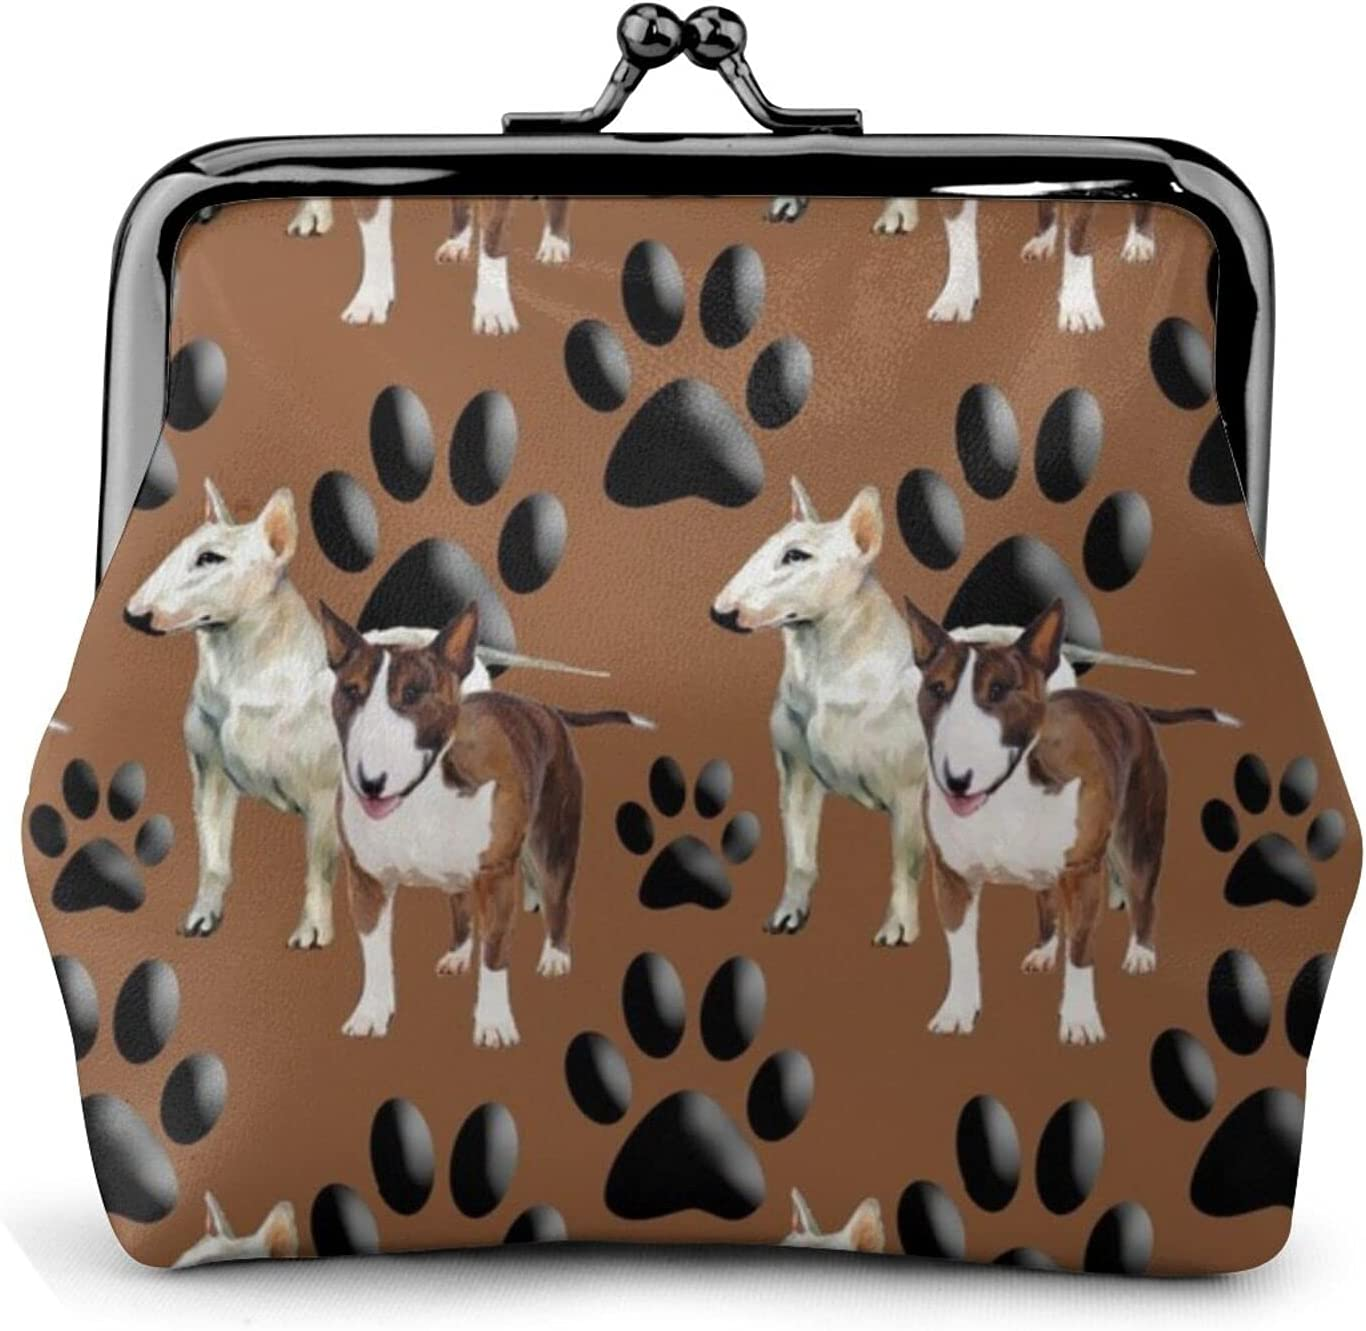 Bull Terriers And 1331 Coin Purse Retro Money Pouch with Kiss-lock Buckle Small Wallet for Women and Girls